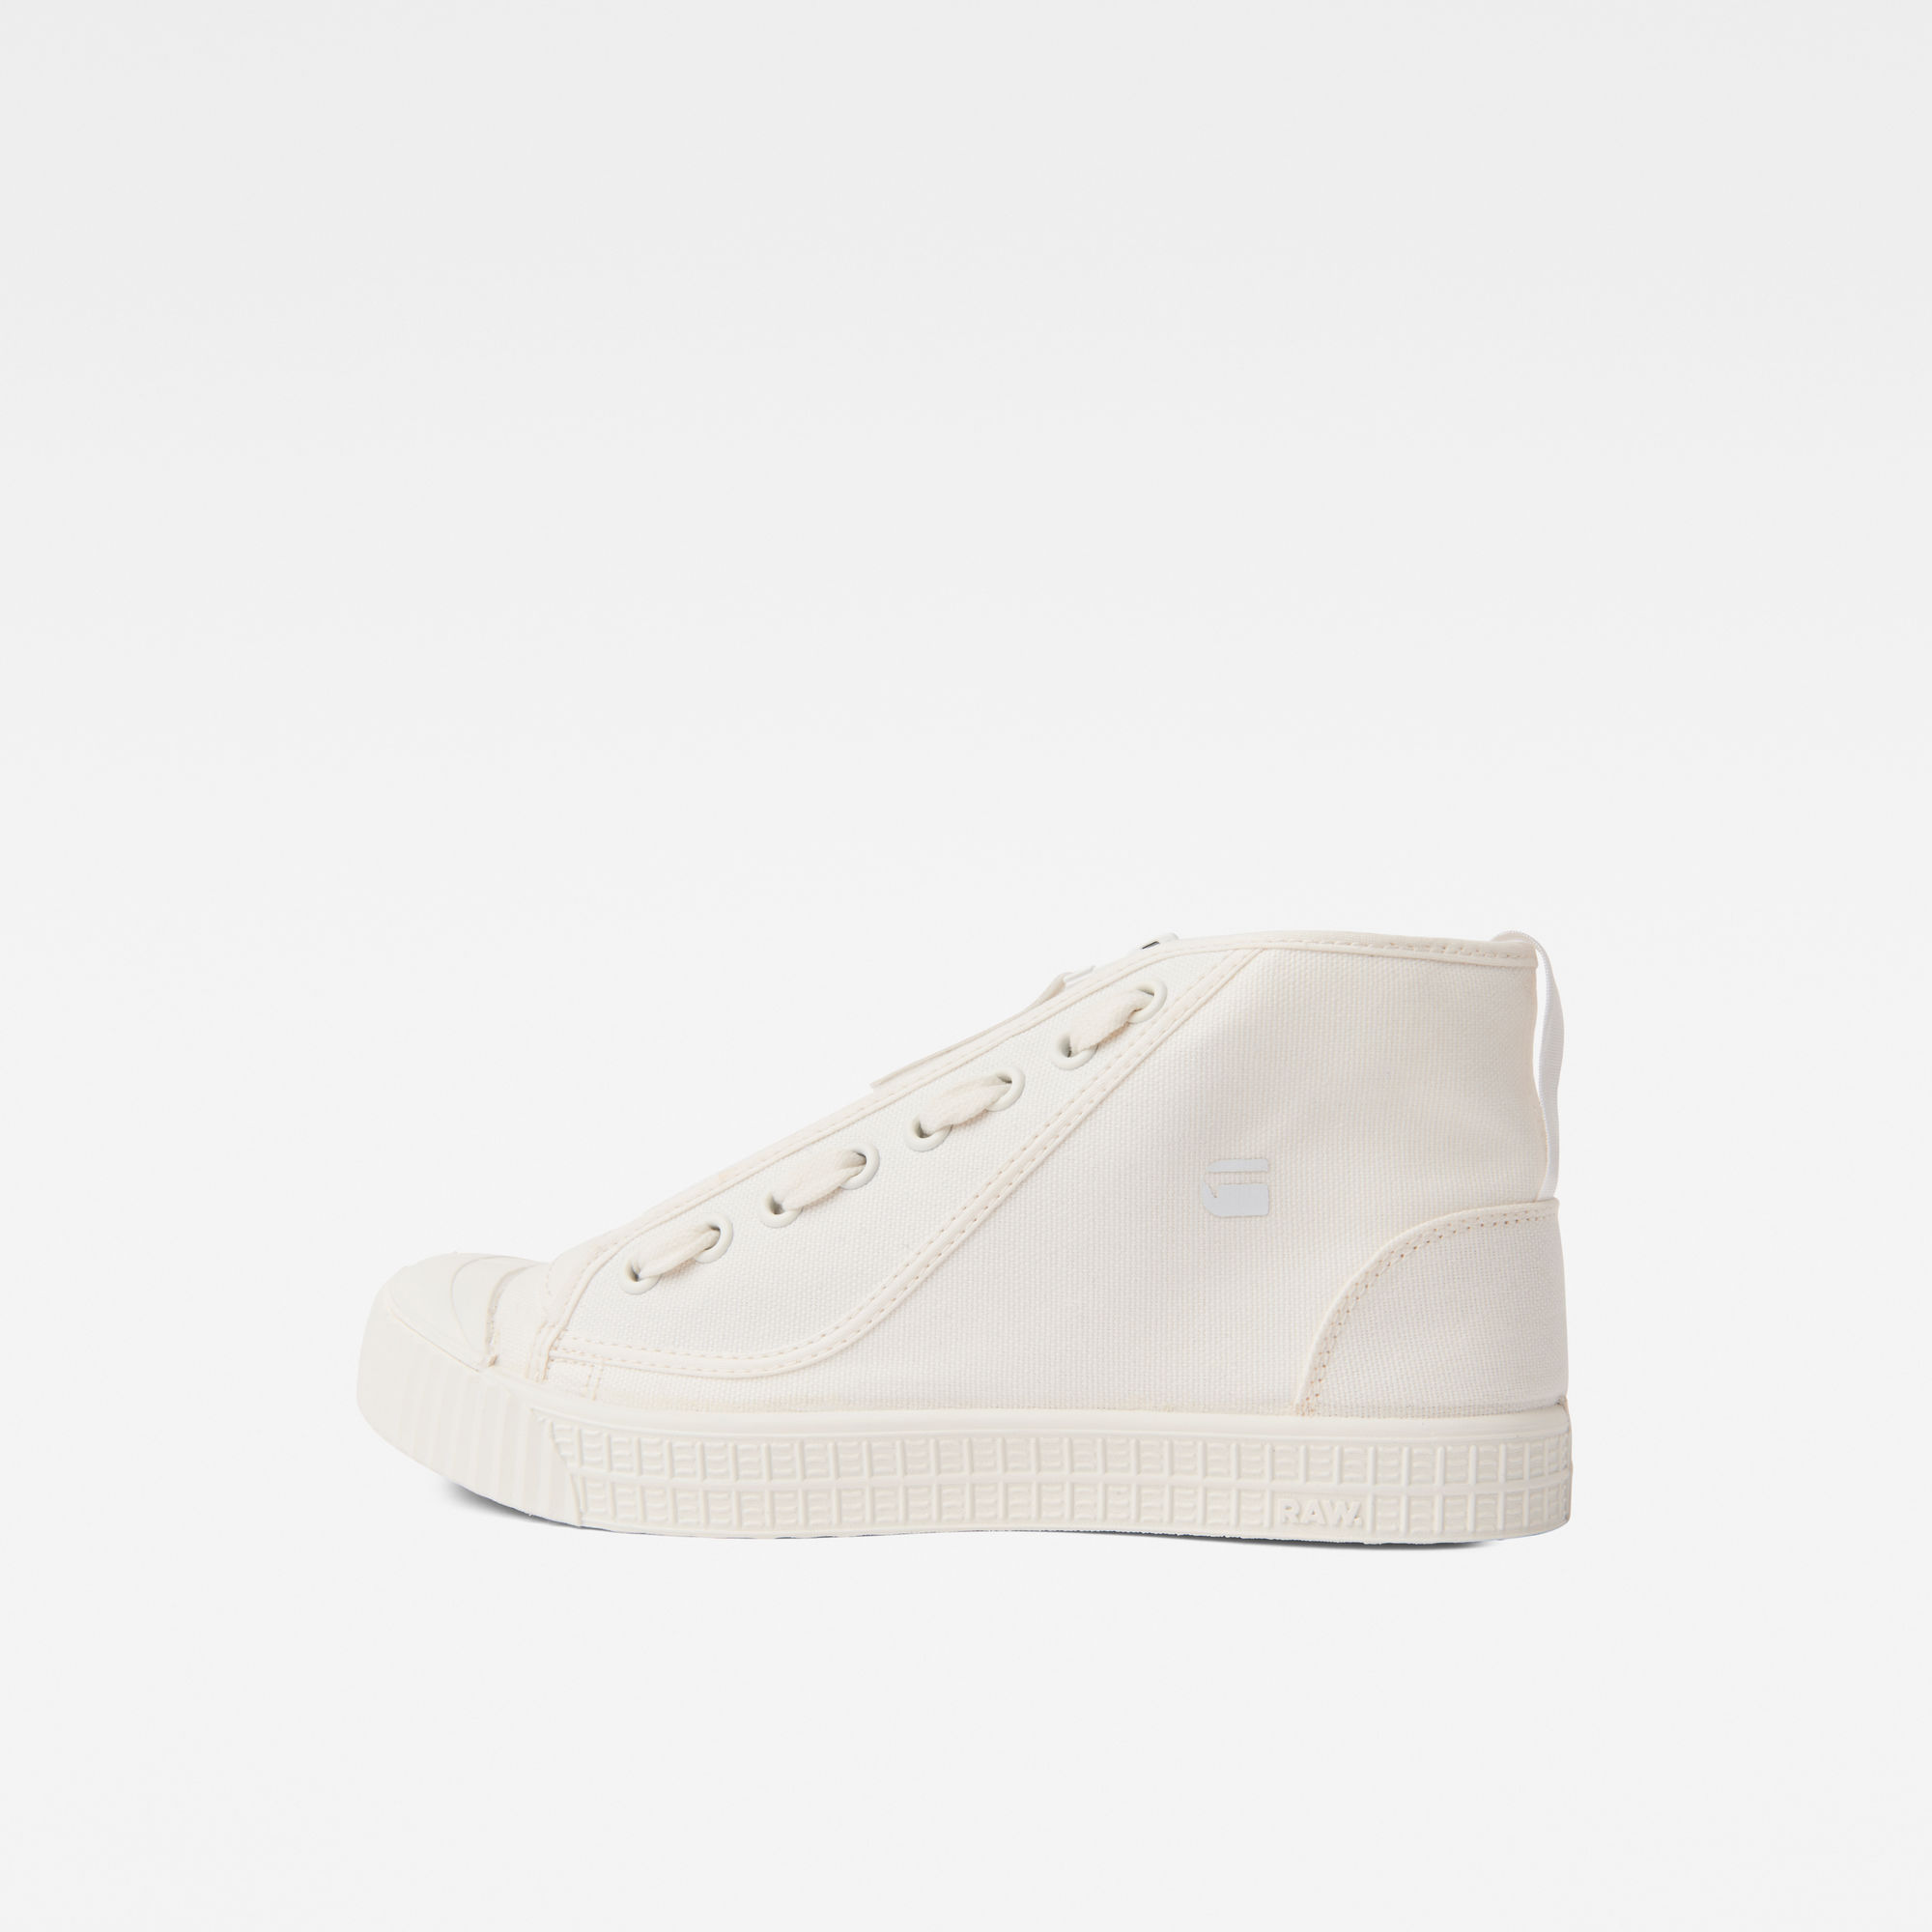 Image of G Star Raw Rovulc Zip Mid Sneakers